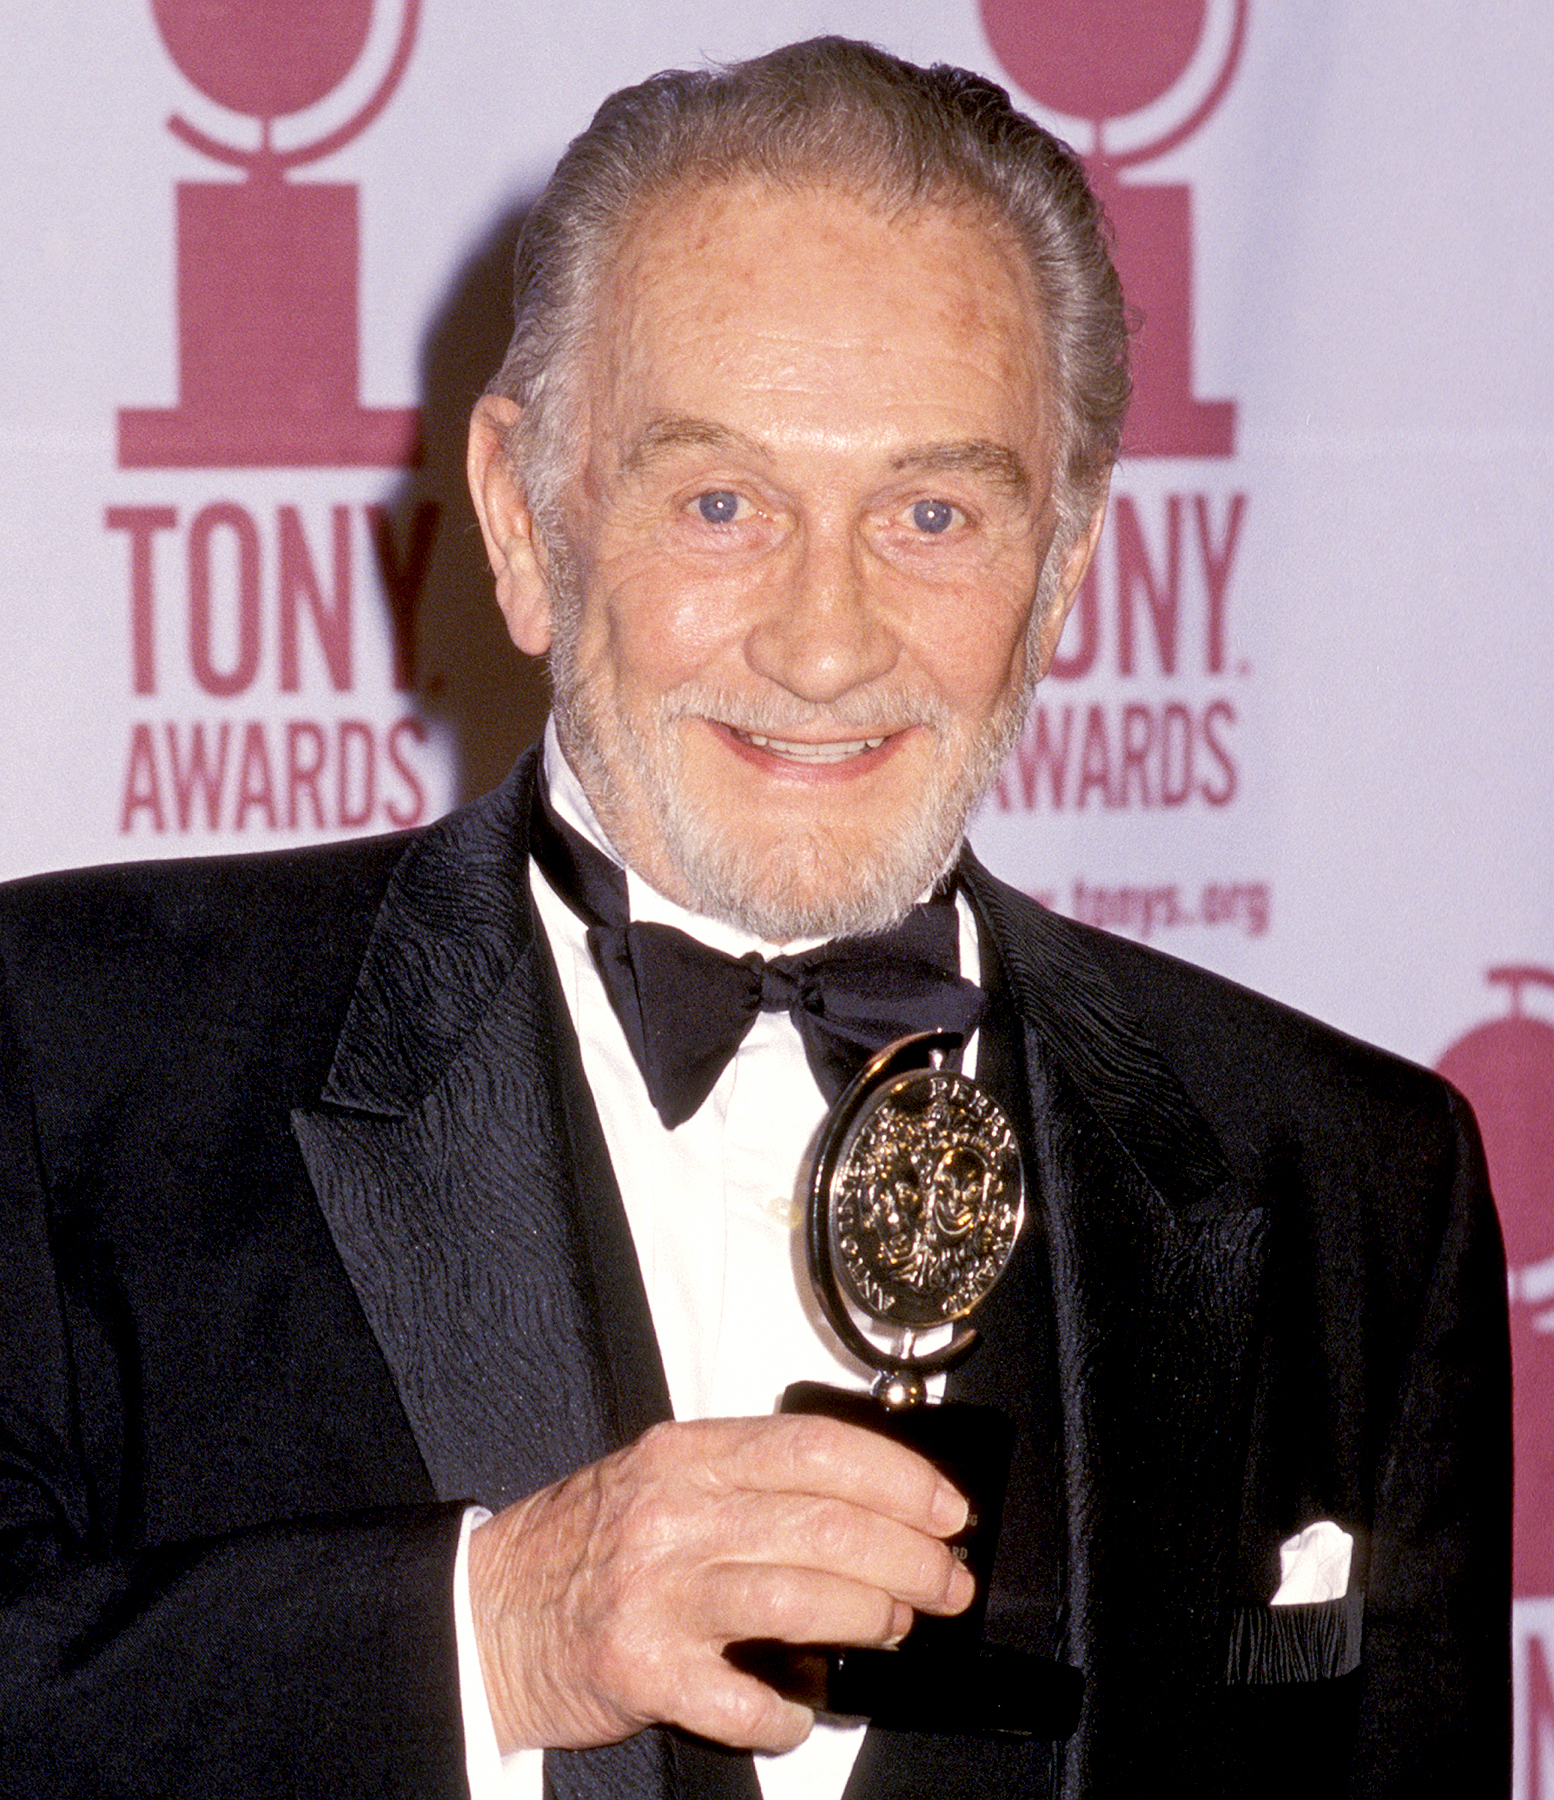 Roy Dotrice attends the 54th Annual Tony Awards on June 4, 2000 at Radio City Music Hall in New York City.